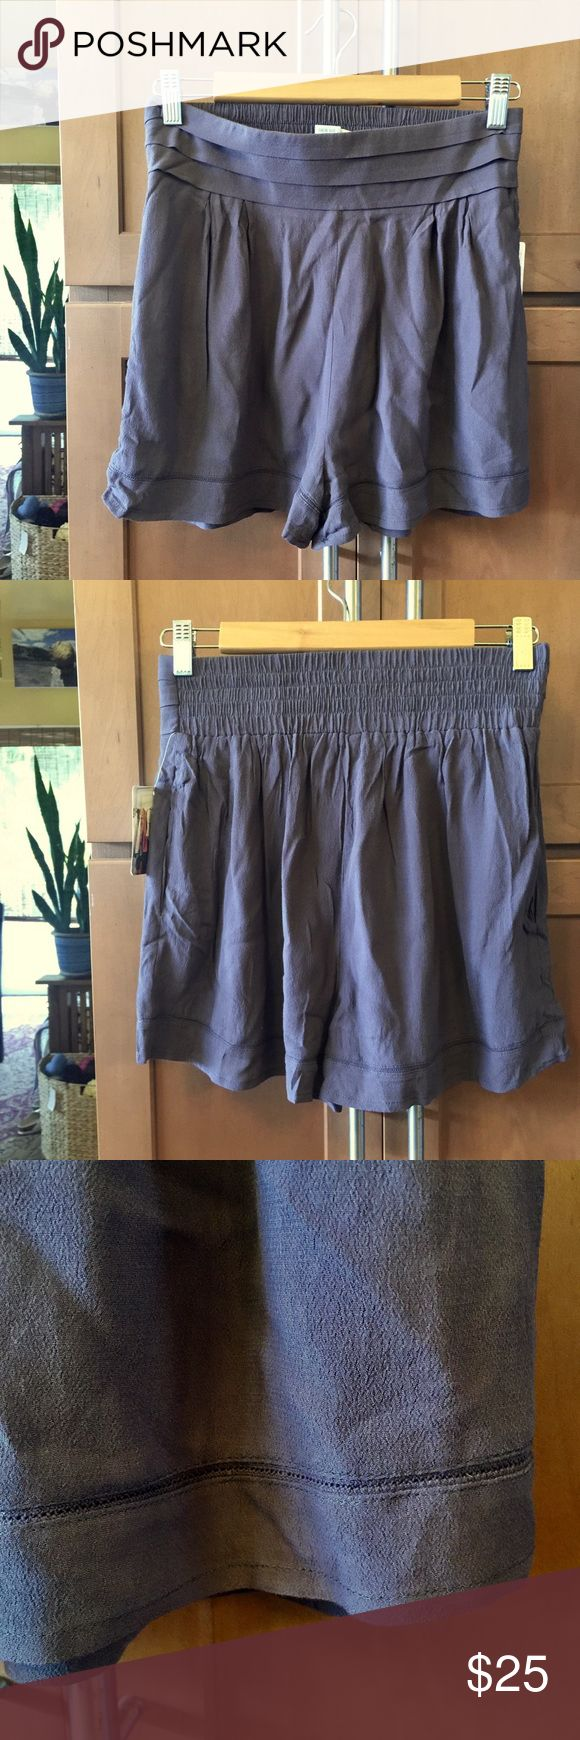 Anthropologie gray shorts Anthropologie gray loose shorts Anthropologie Shorts